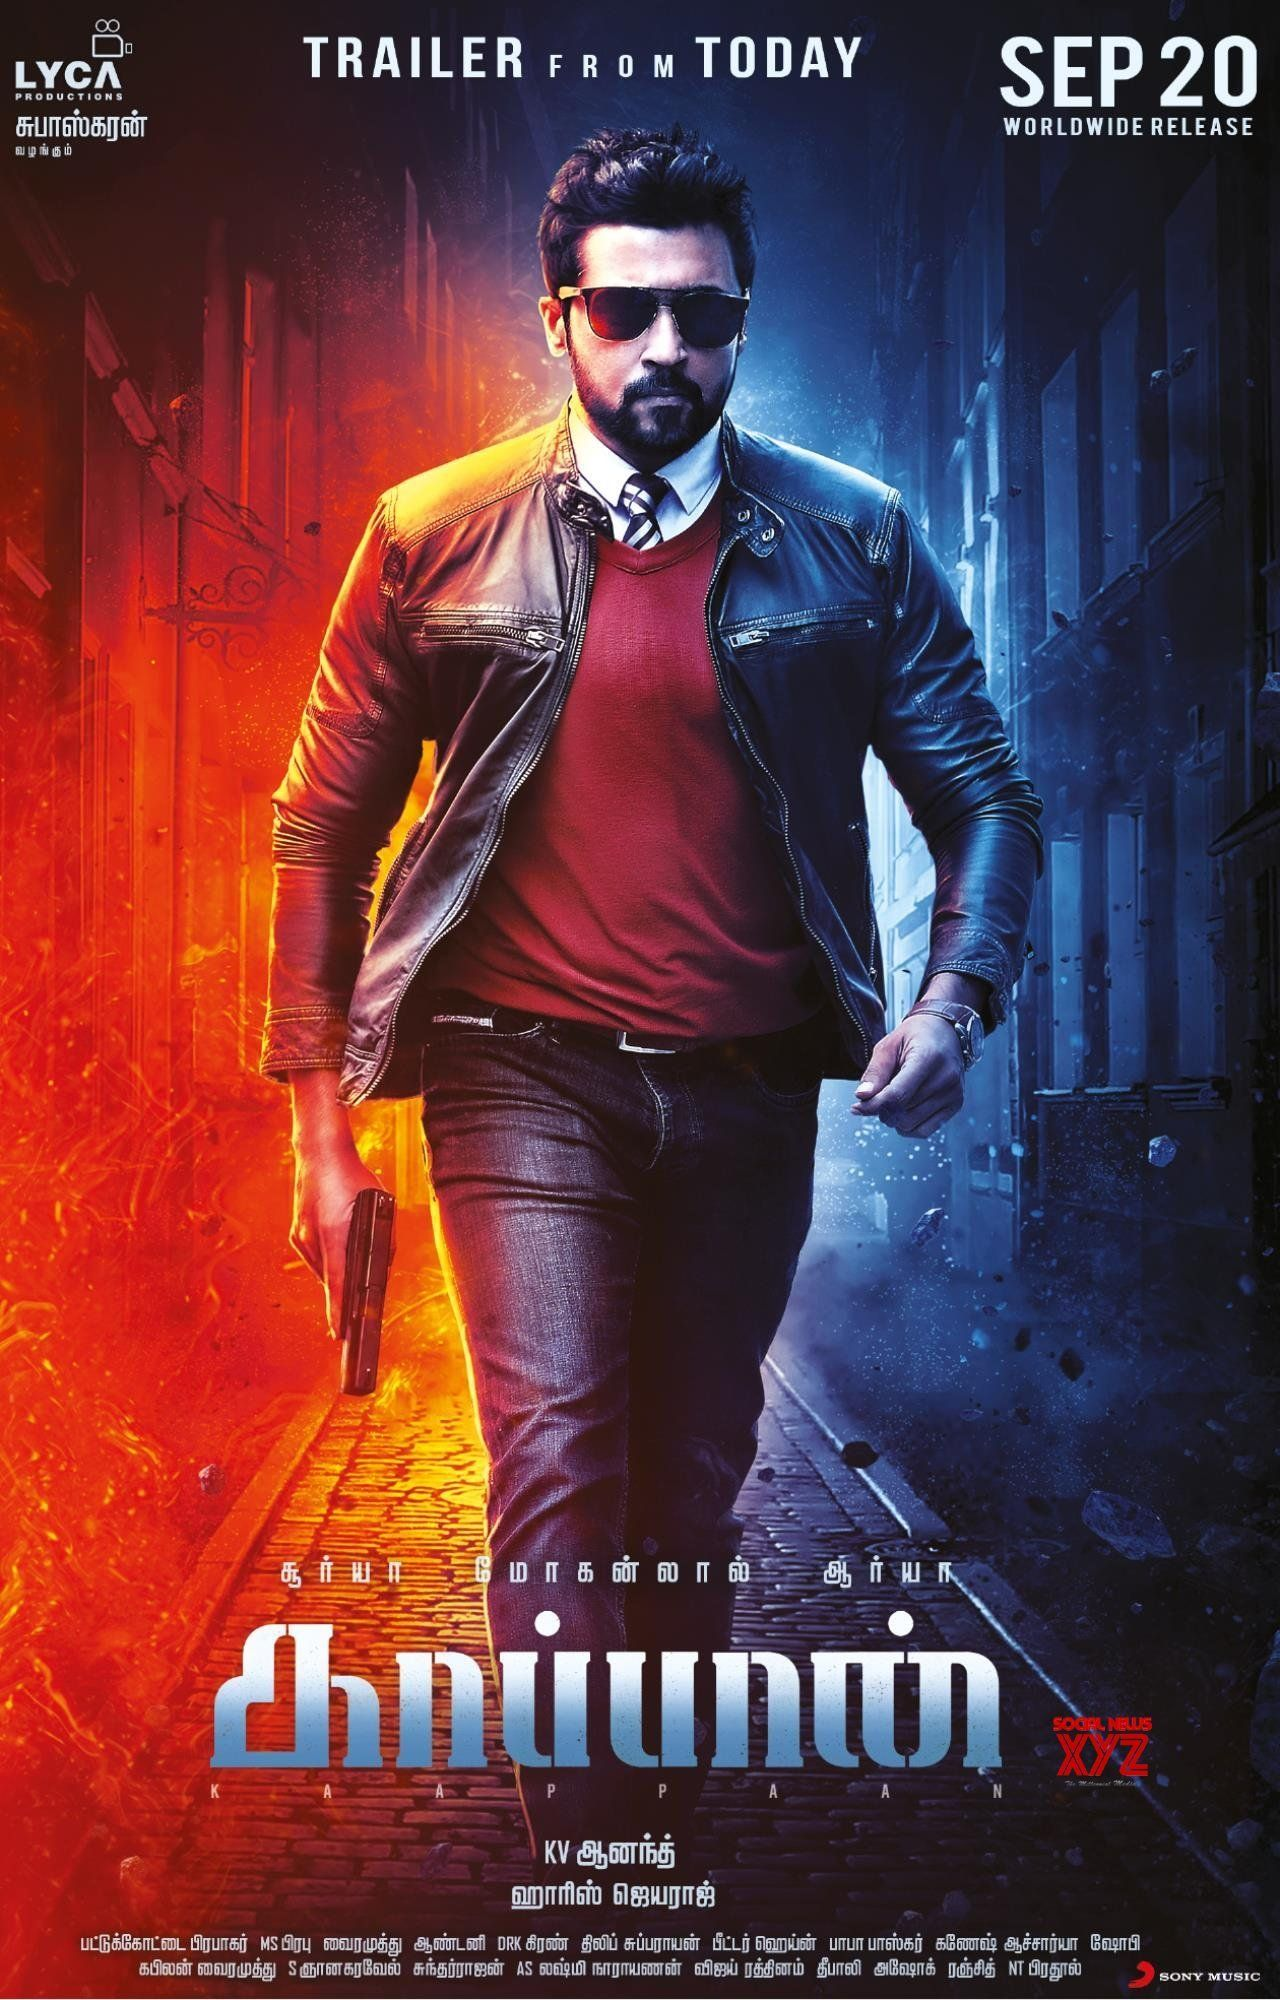 Suriya S Kaappaan Movie Trailer From Today Poster Social News Xyz Full Movies Download Movies Movies